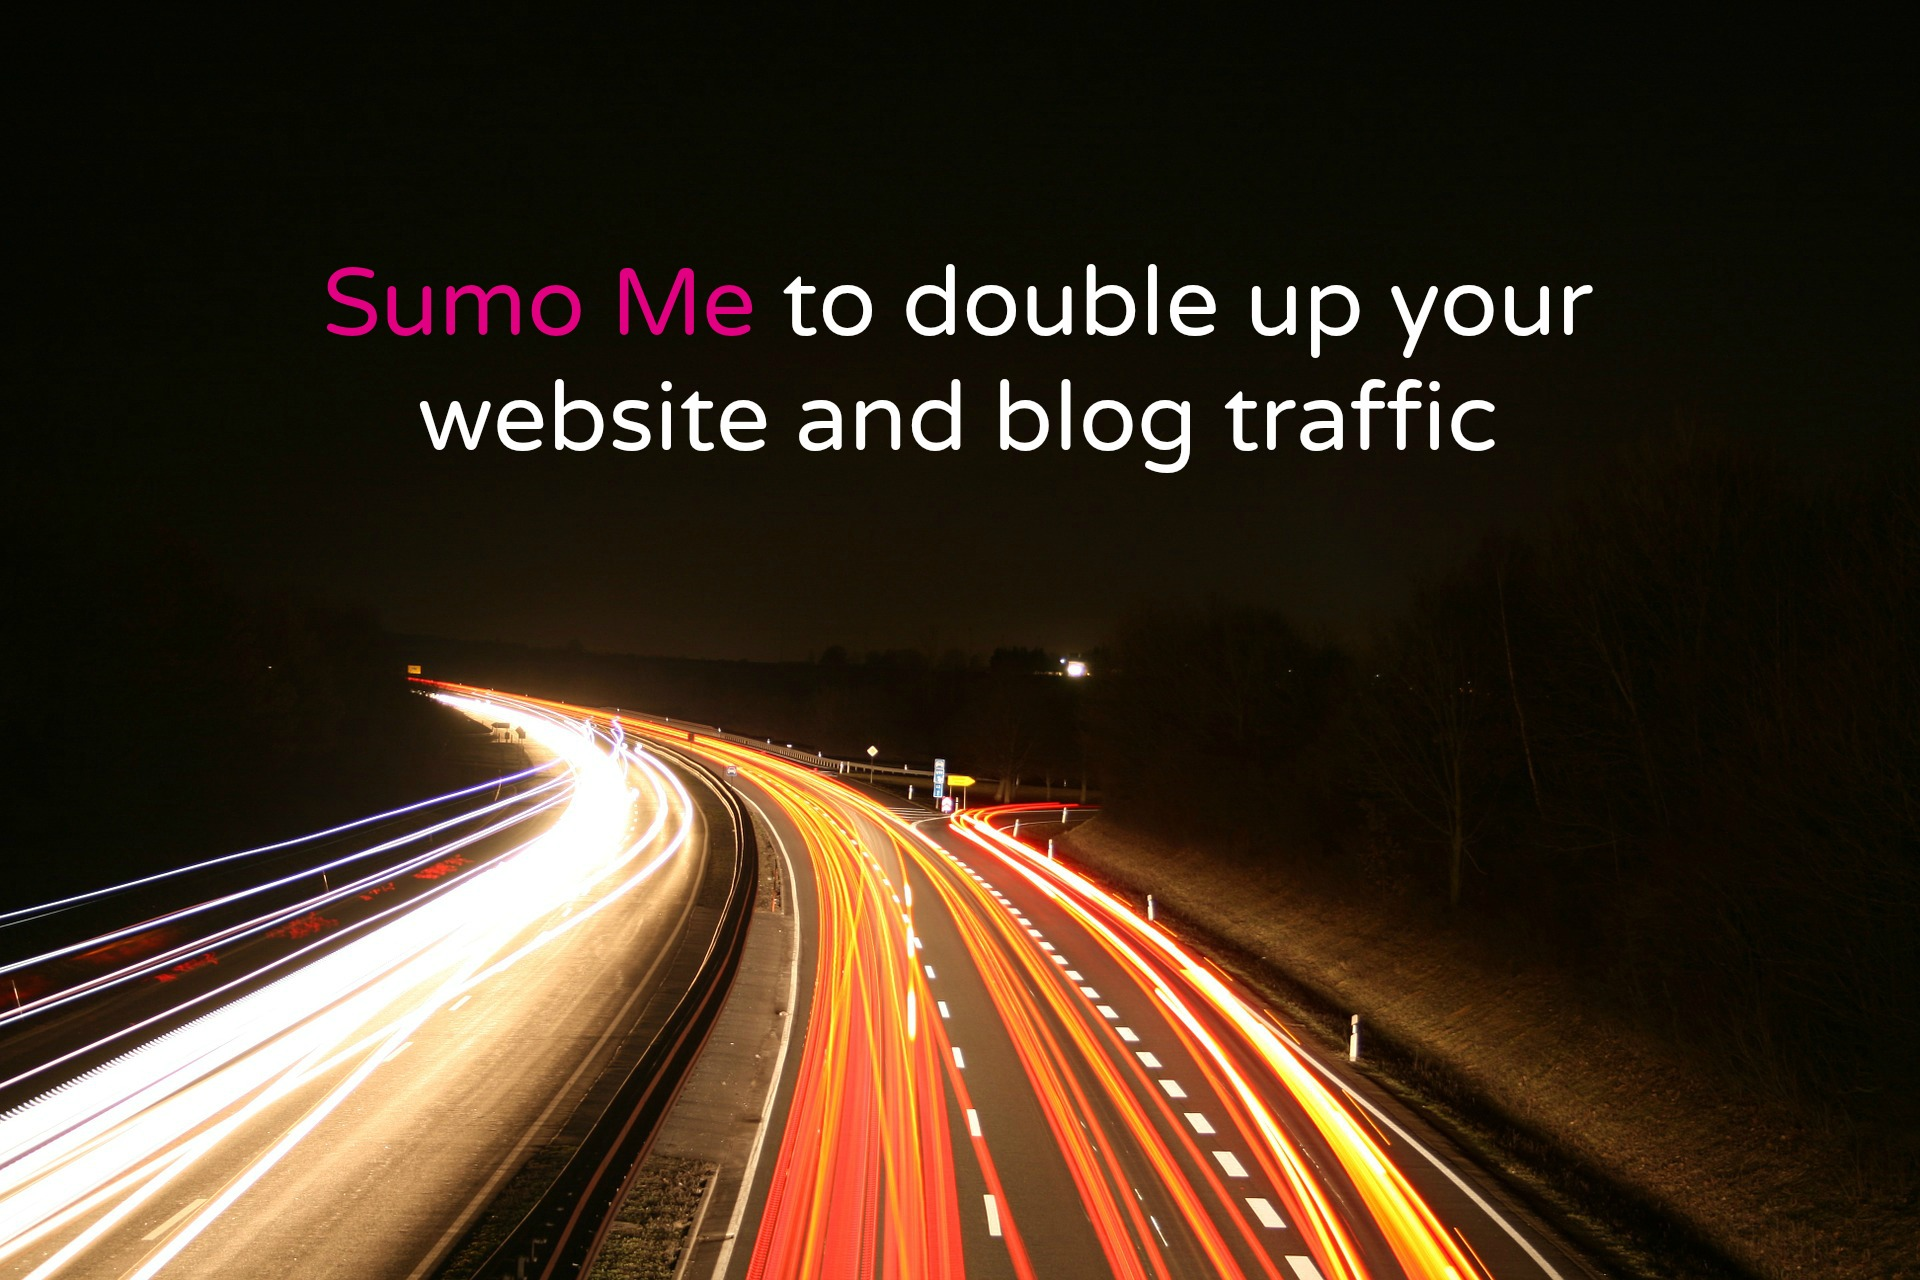 Sumo me to double up your traffic